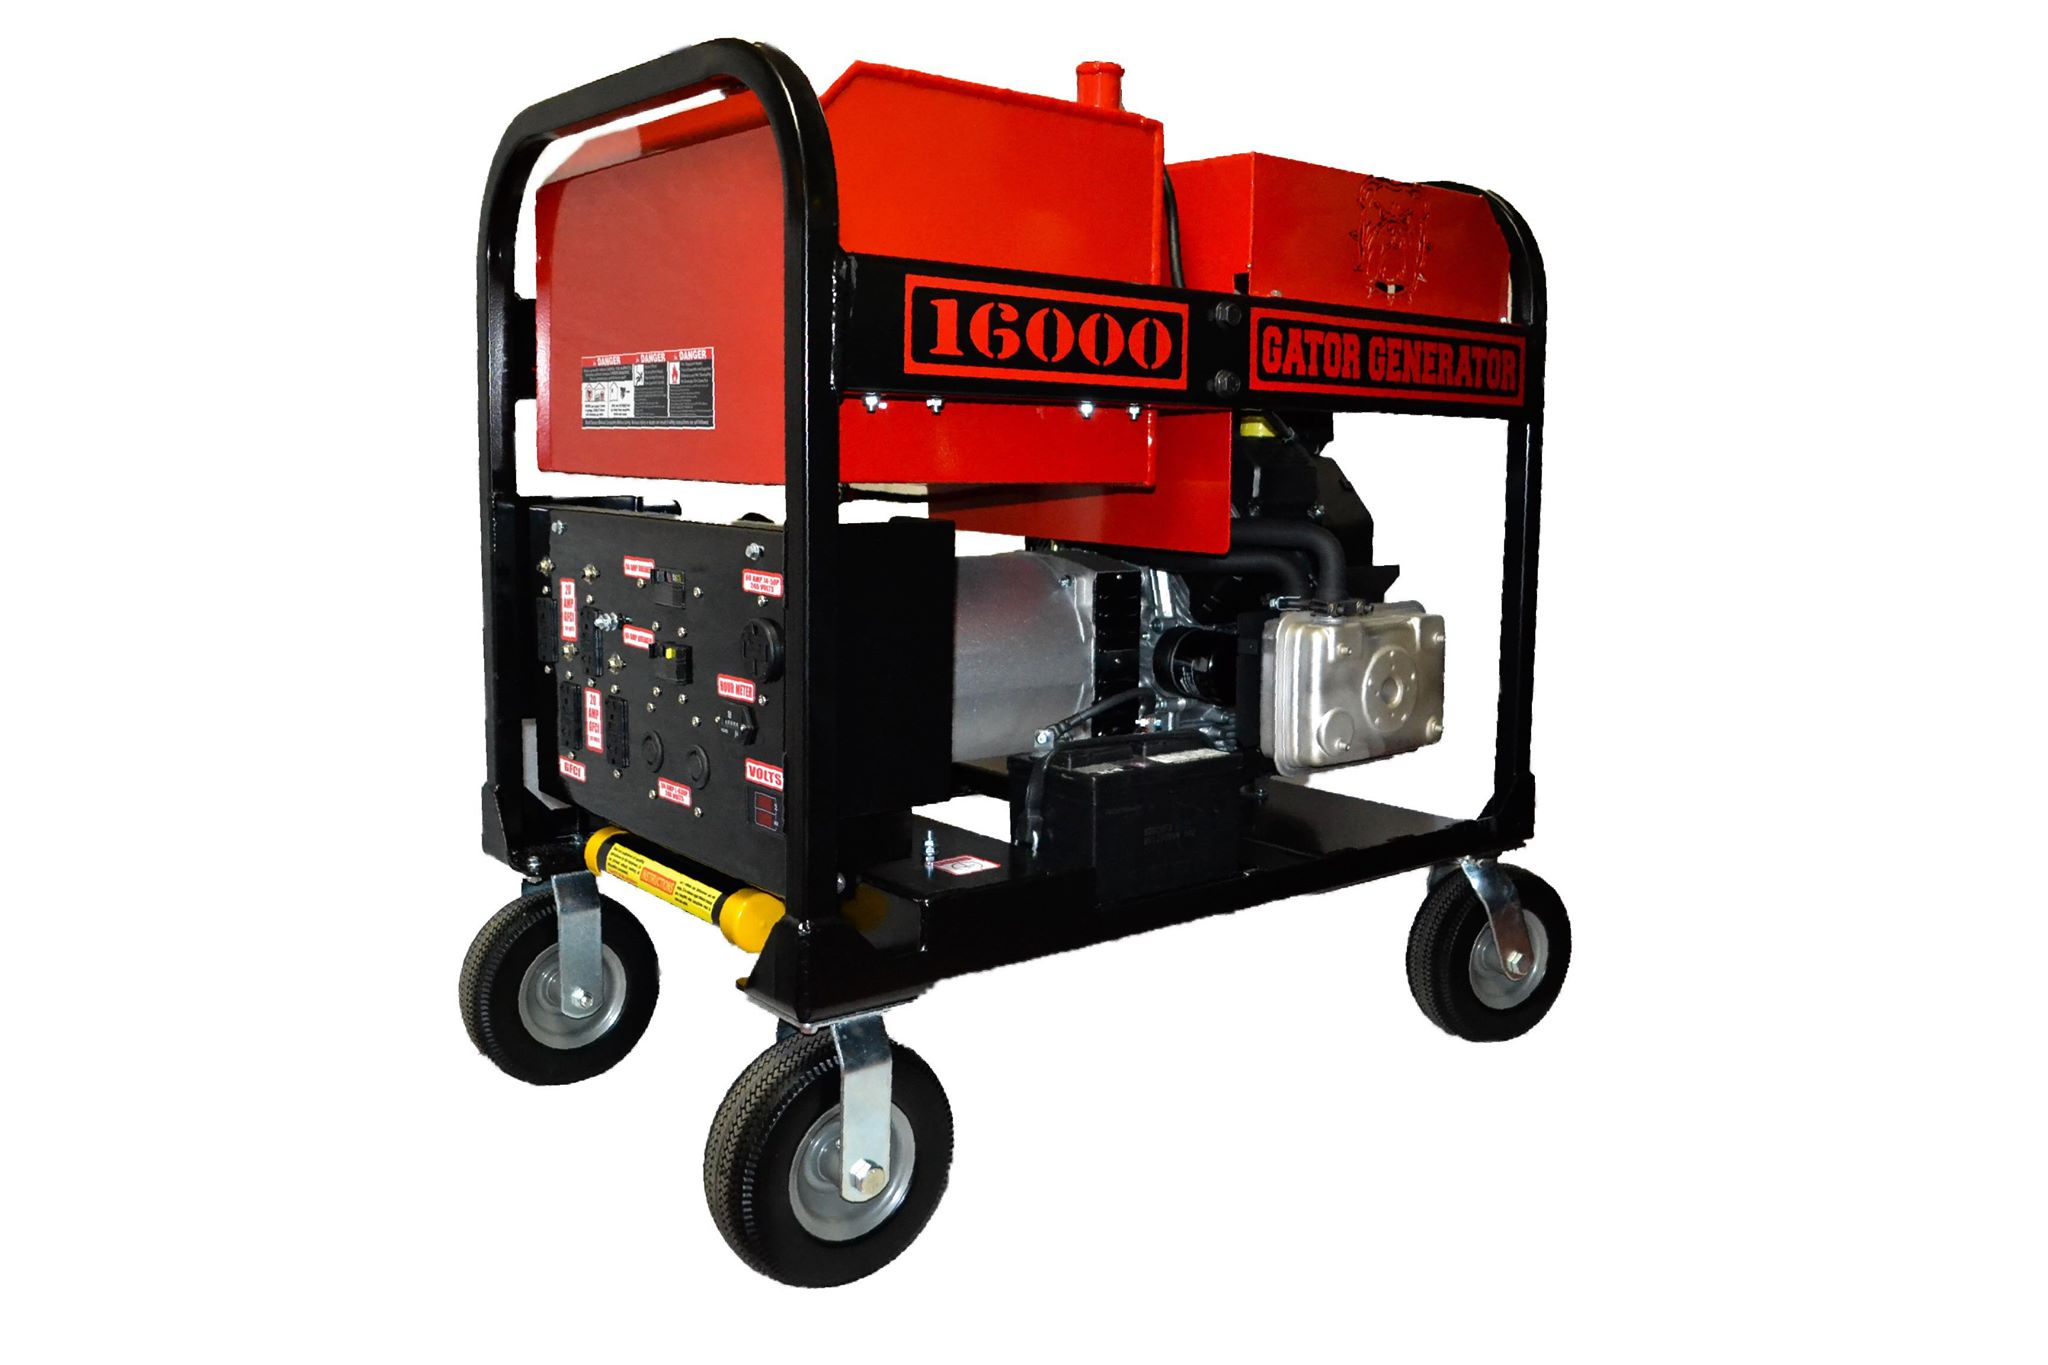 BULLDOG 16,000 Watts | GATOR GENERATORS